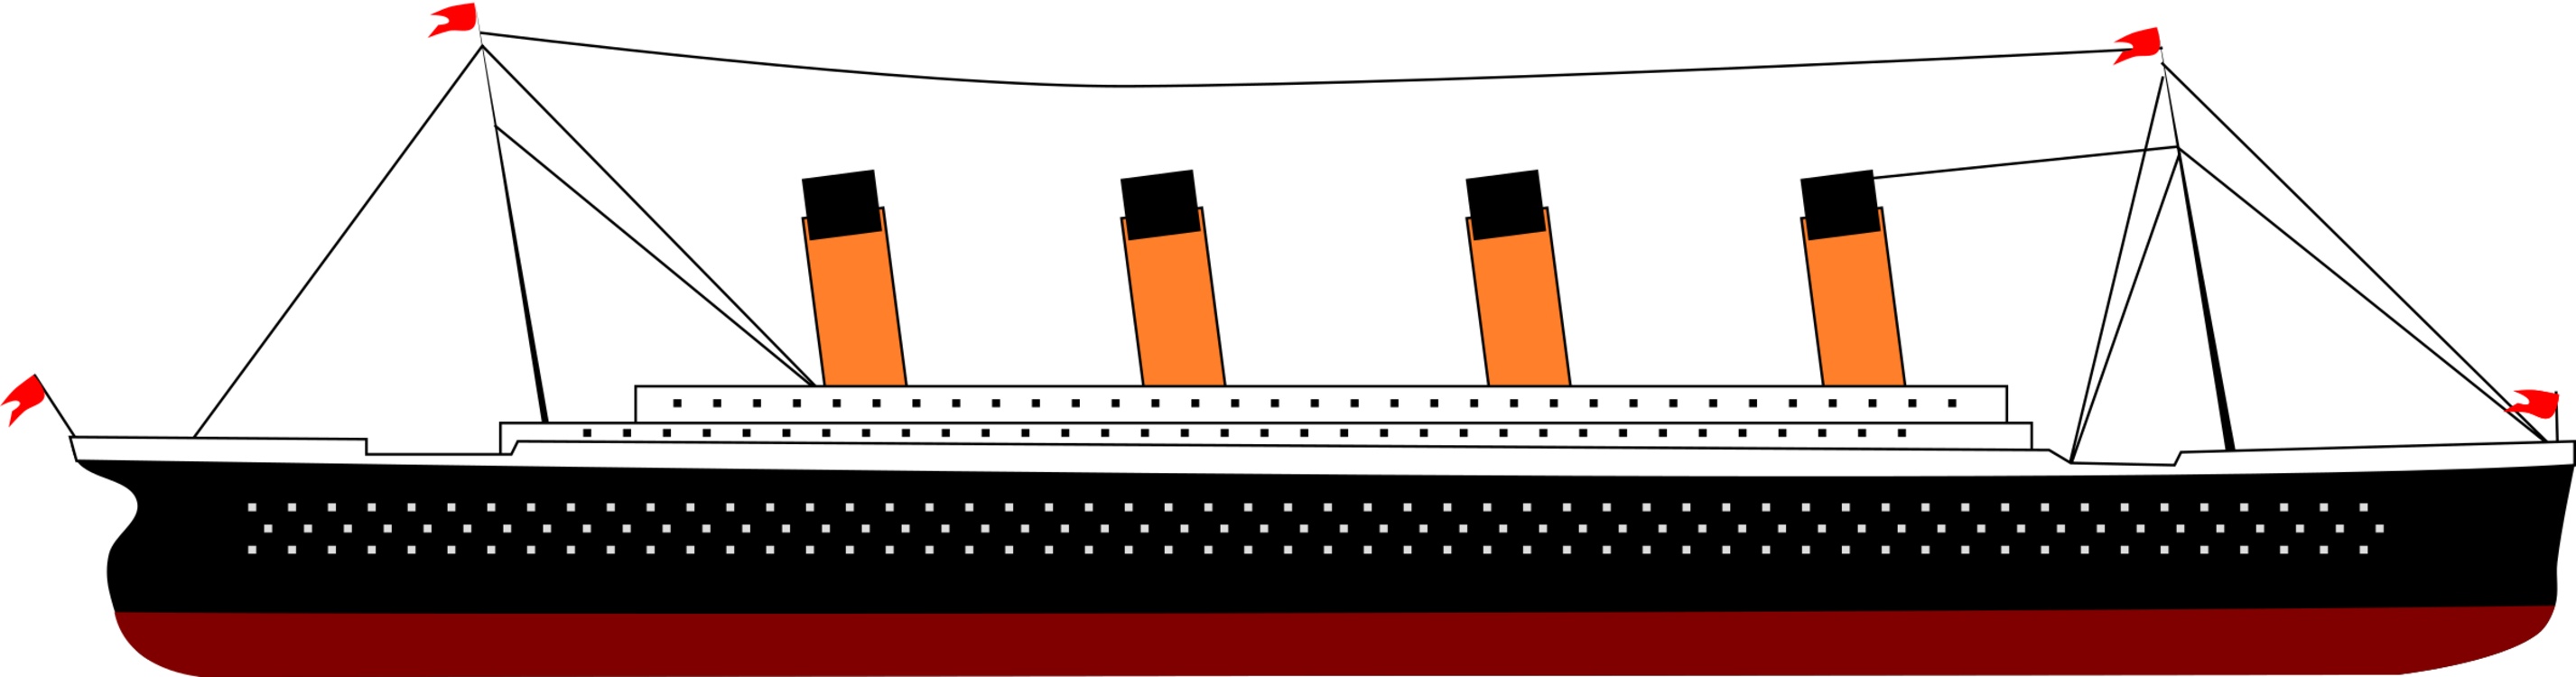 Drawing titanic. Sinking of the rms